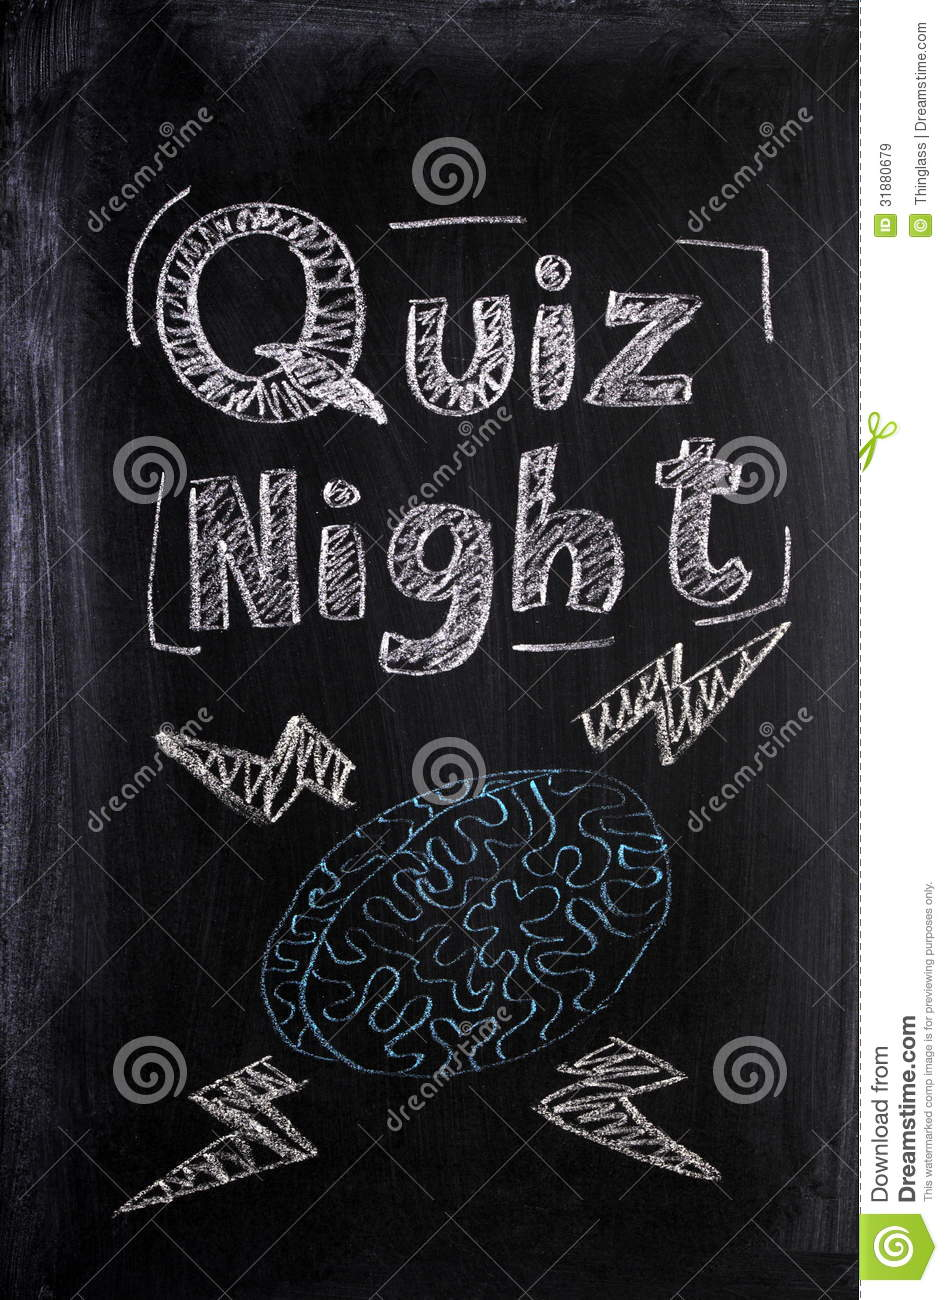 Quiz Night stock image. Image of social, chalkboard, night - 31880679